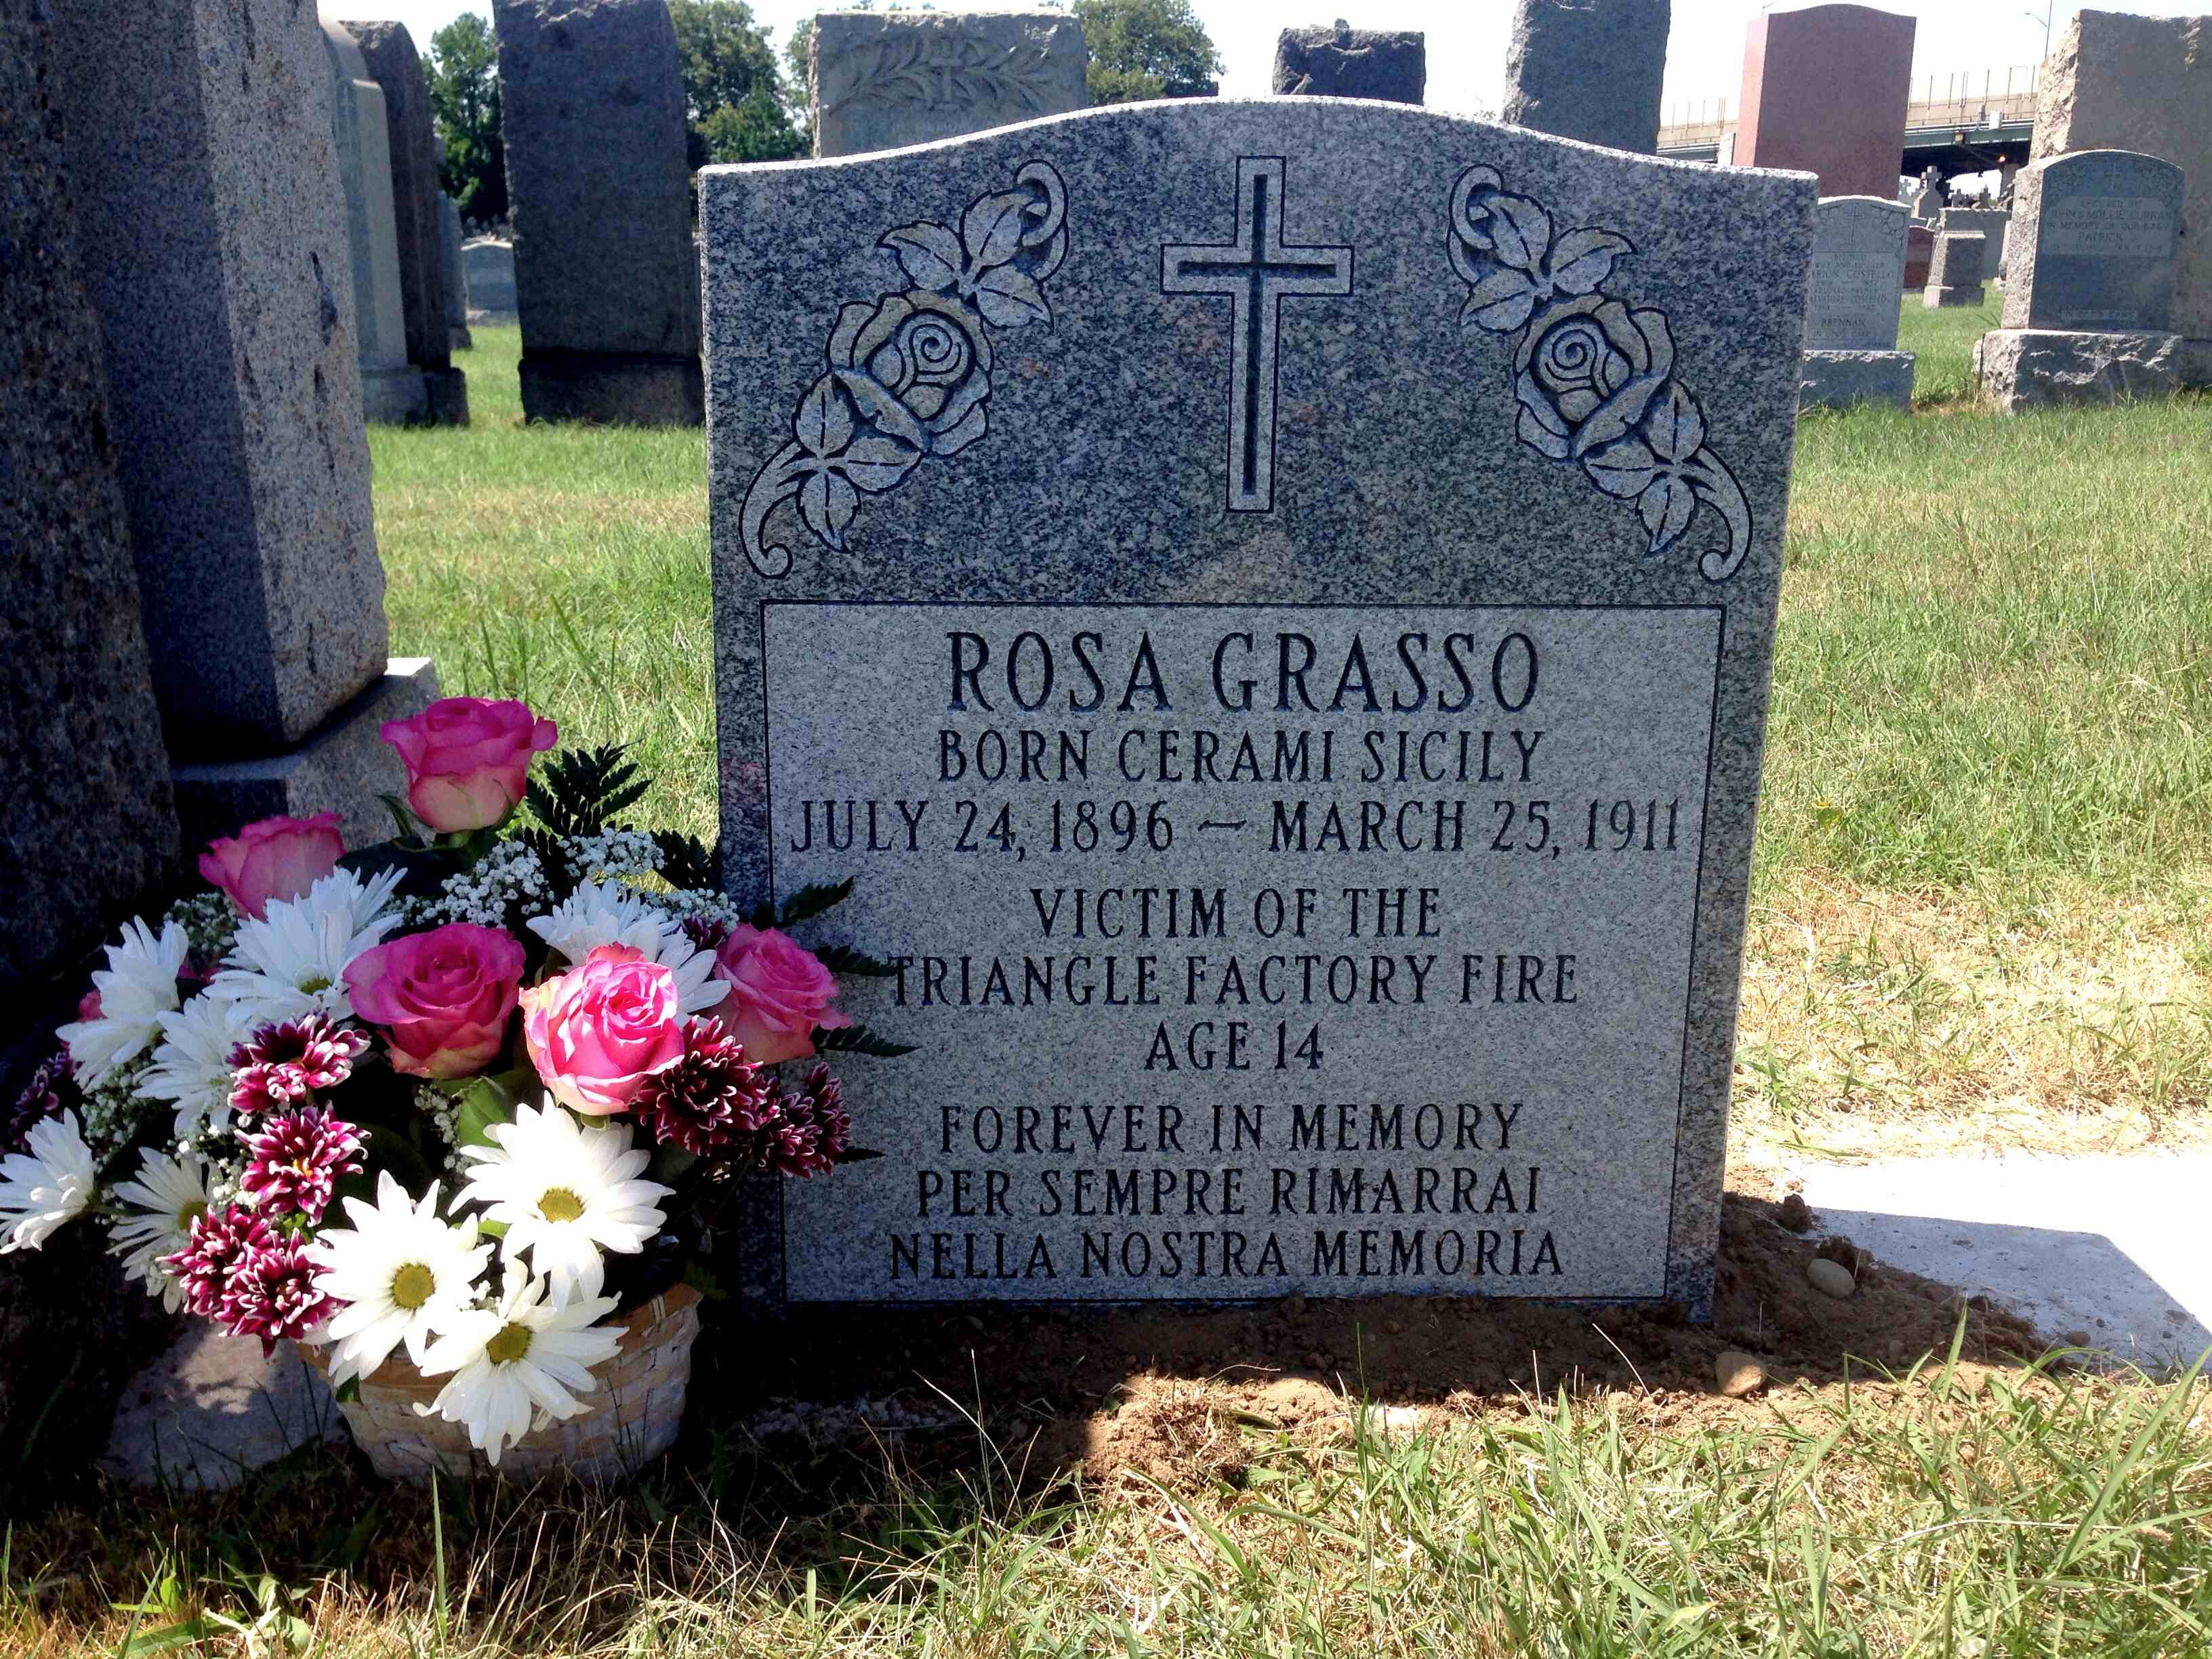 At Calvary Cemetery: The grave of Rosa Grasso.